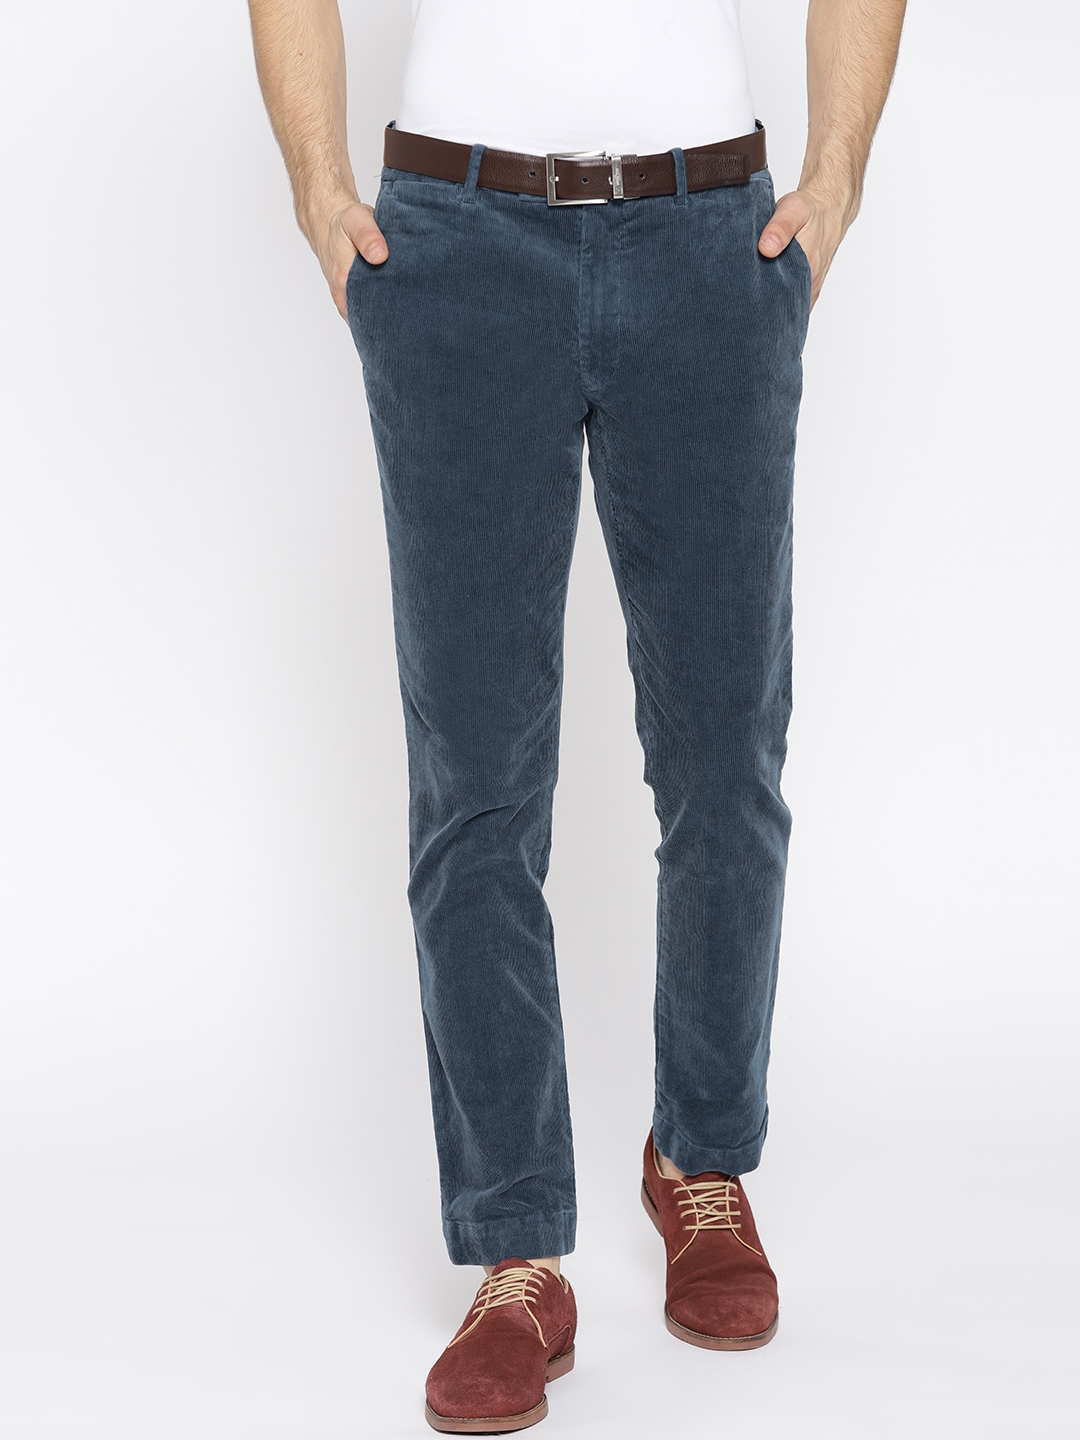 cea2124250 Buy Polo Ralph Lauren Stretch Slim Fit Corduroy Pant - Trousers for ...